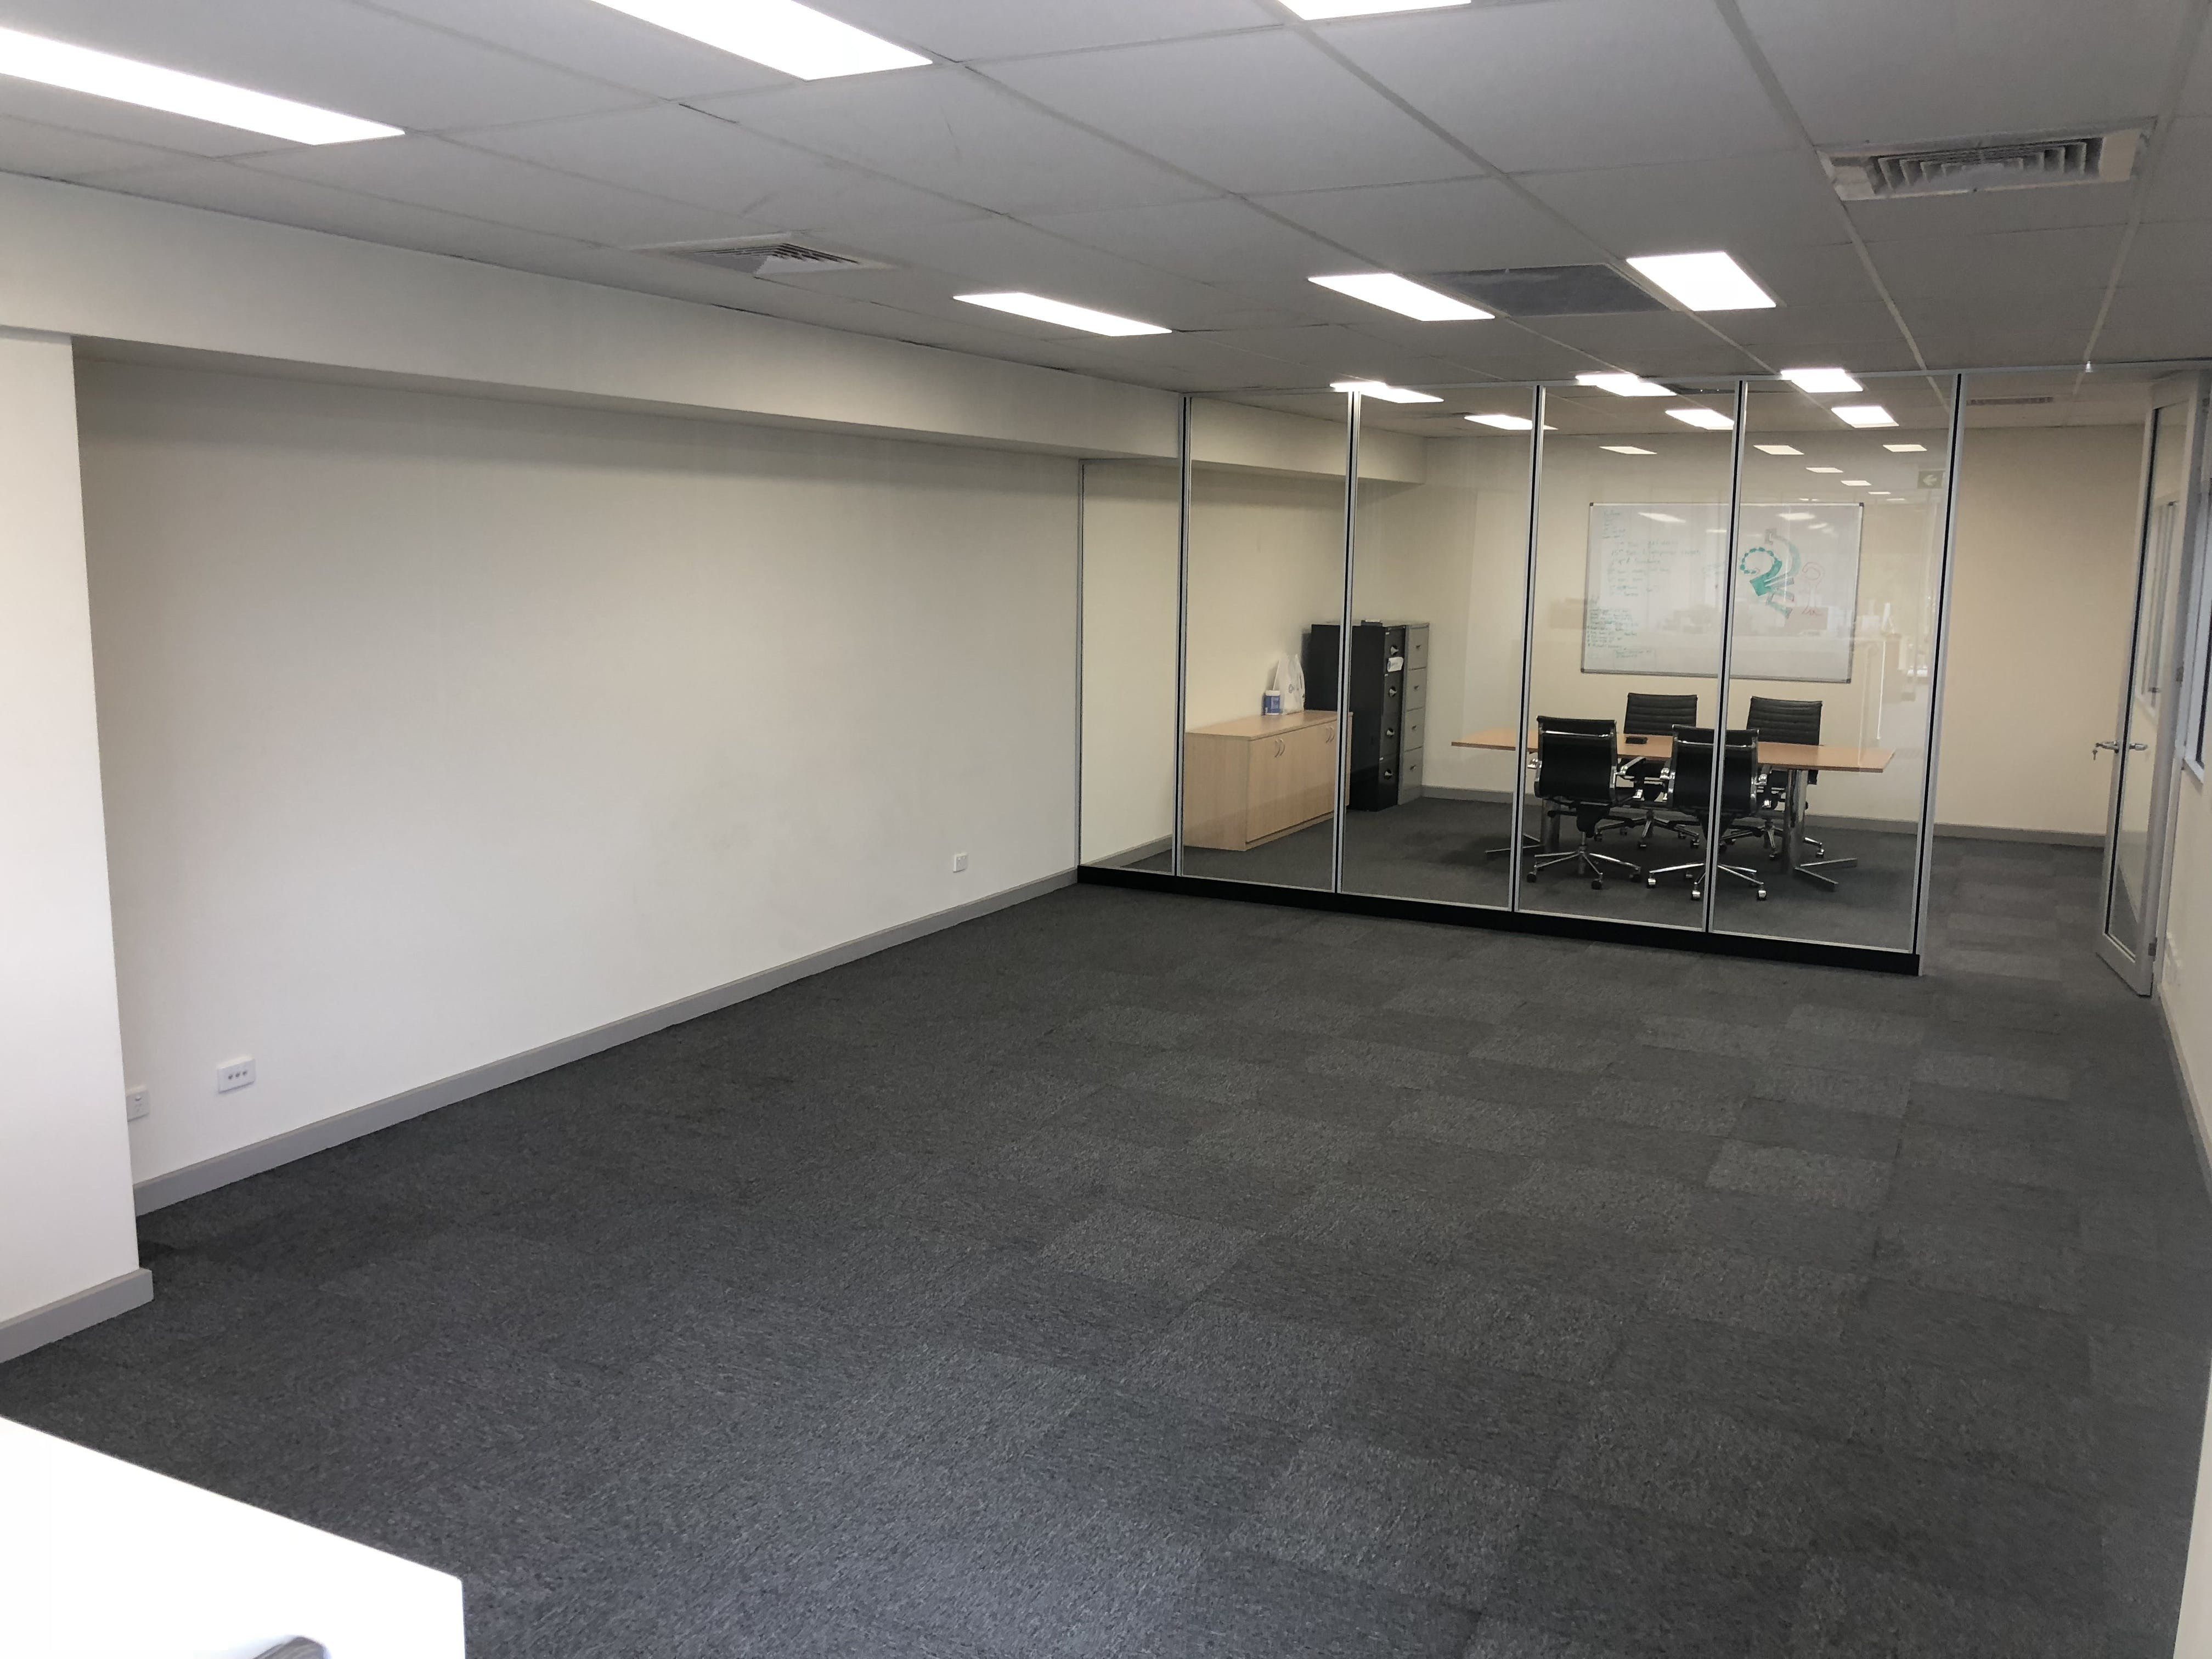 First Floor Office Space, shared office at Office Space, image 1